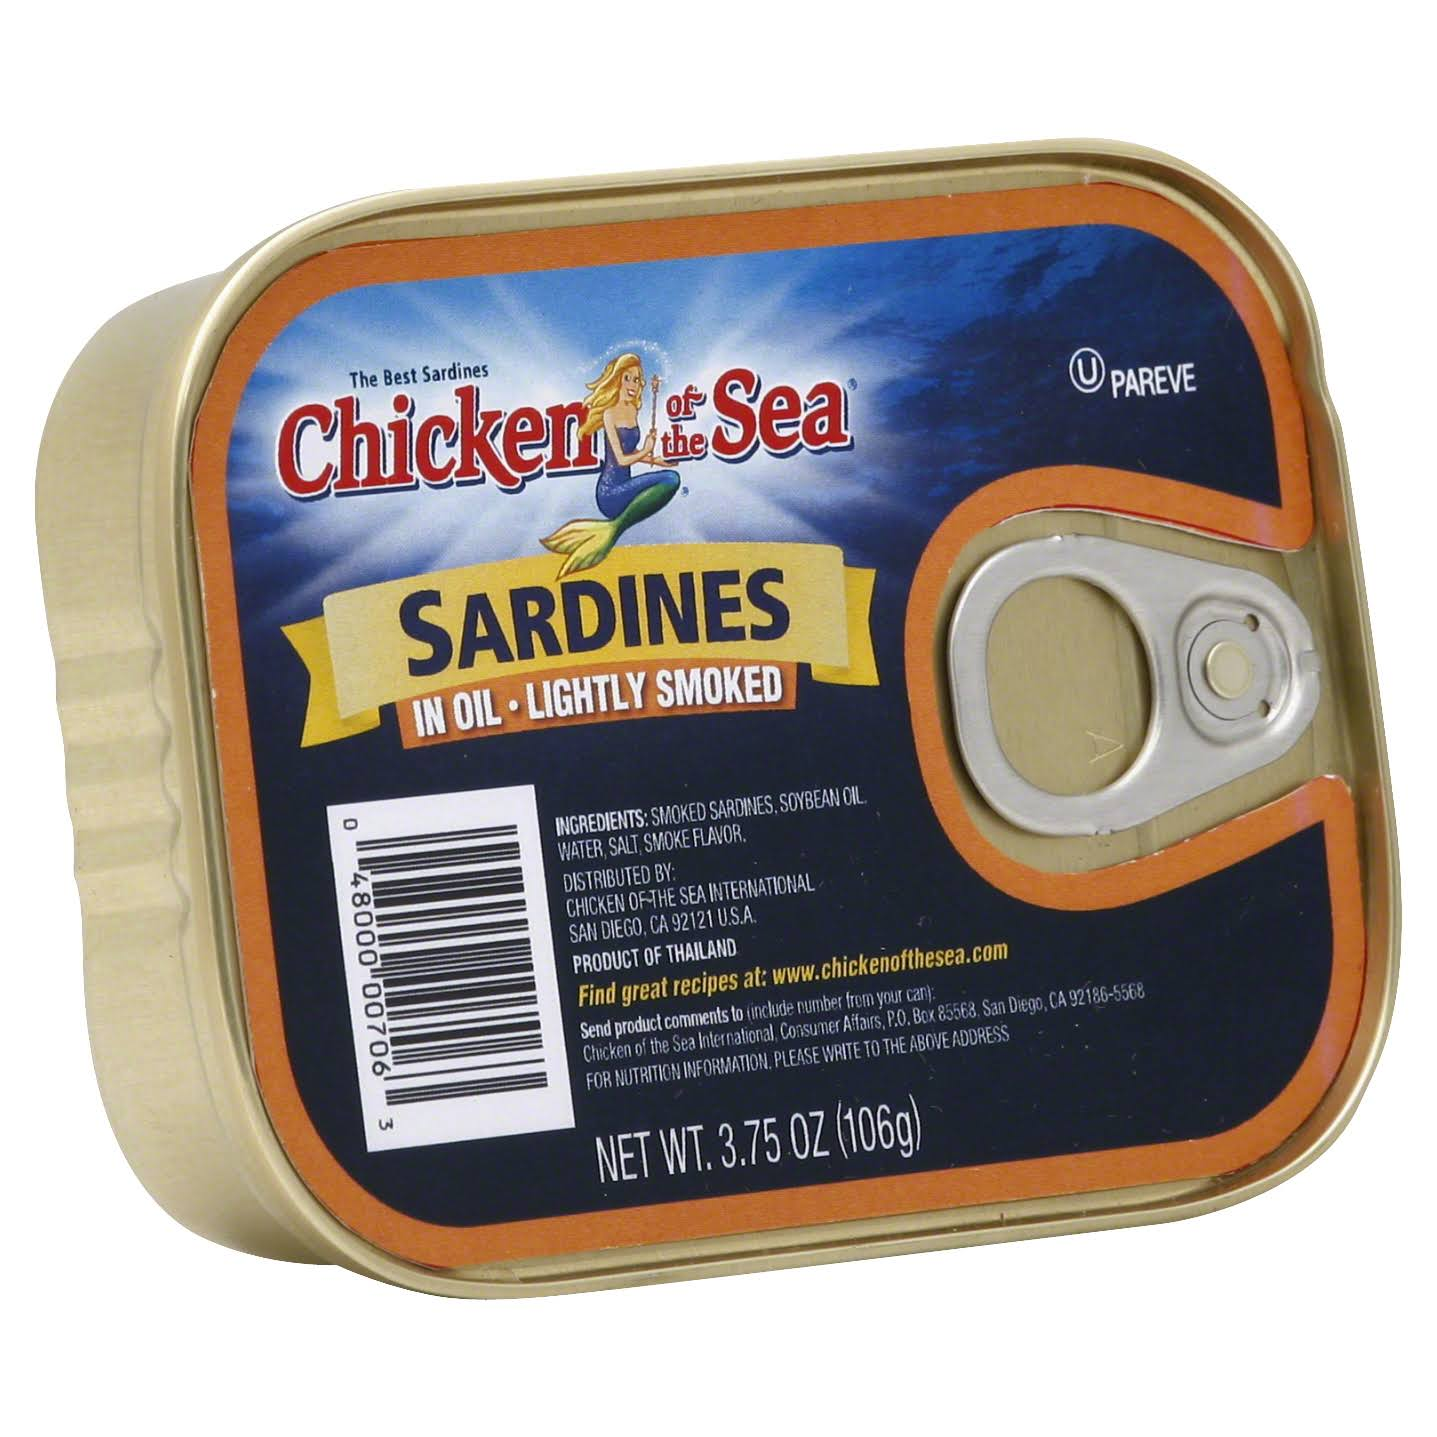 Chicken of the Sea Sardines in Oil - Lightly Smoked, 3.75oz